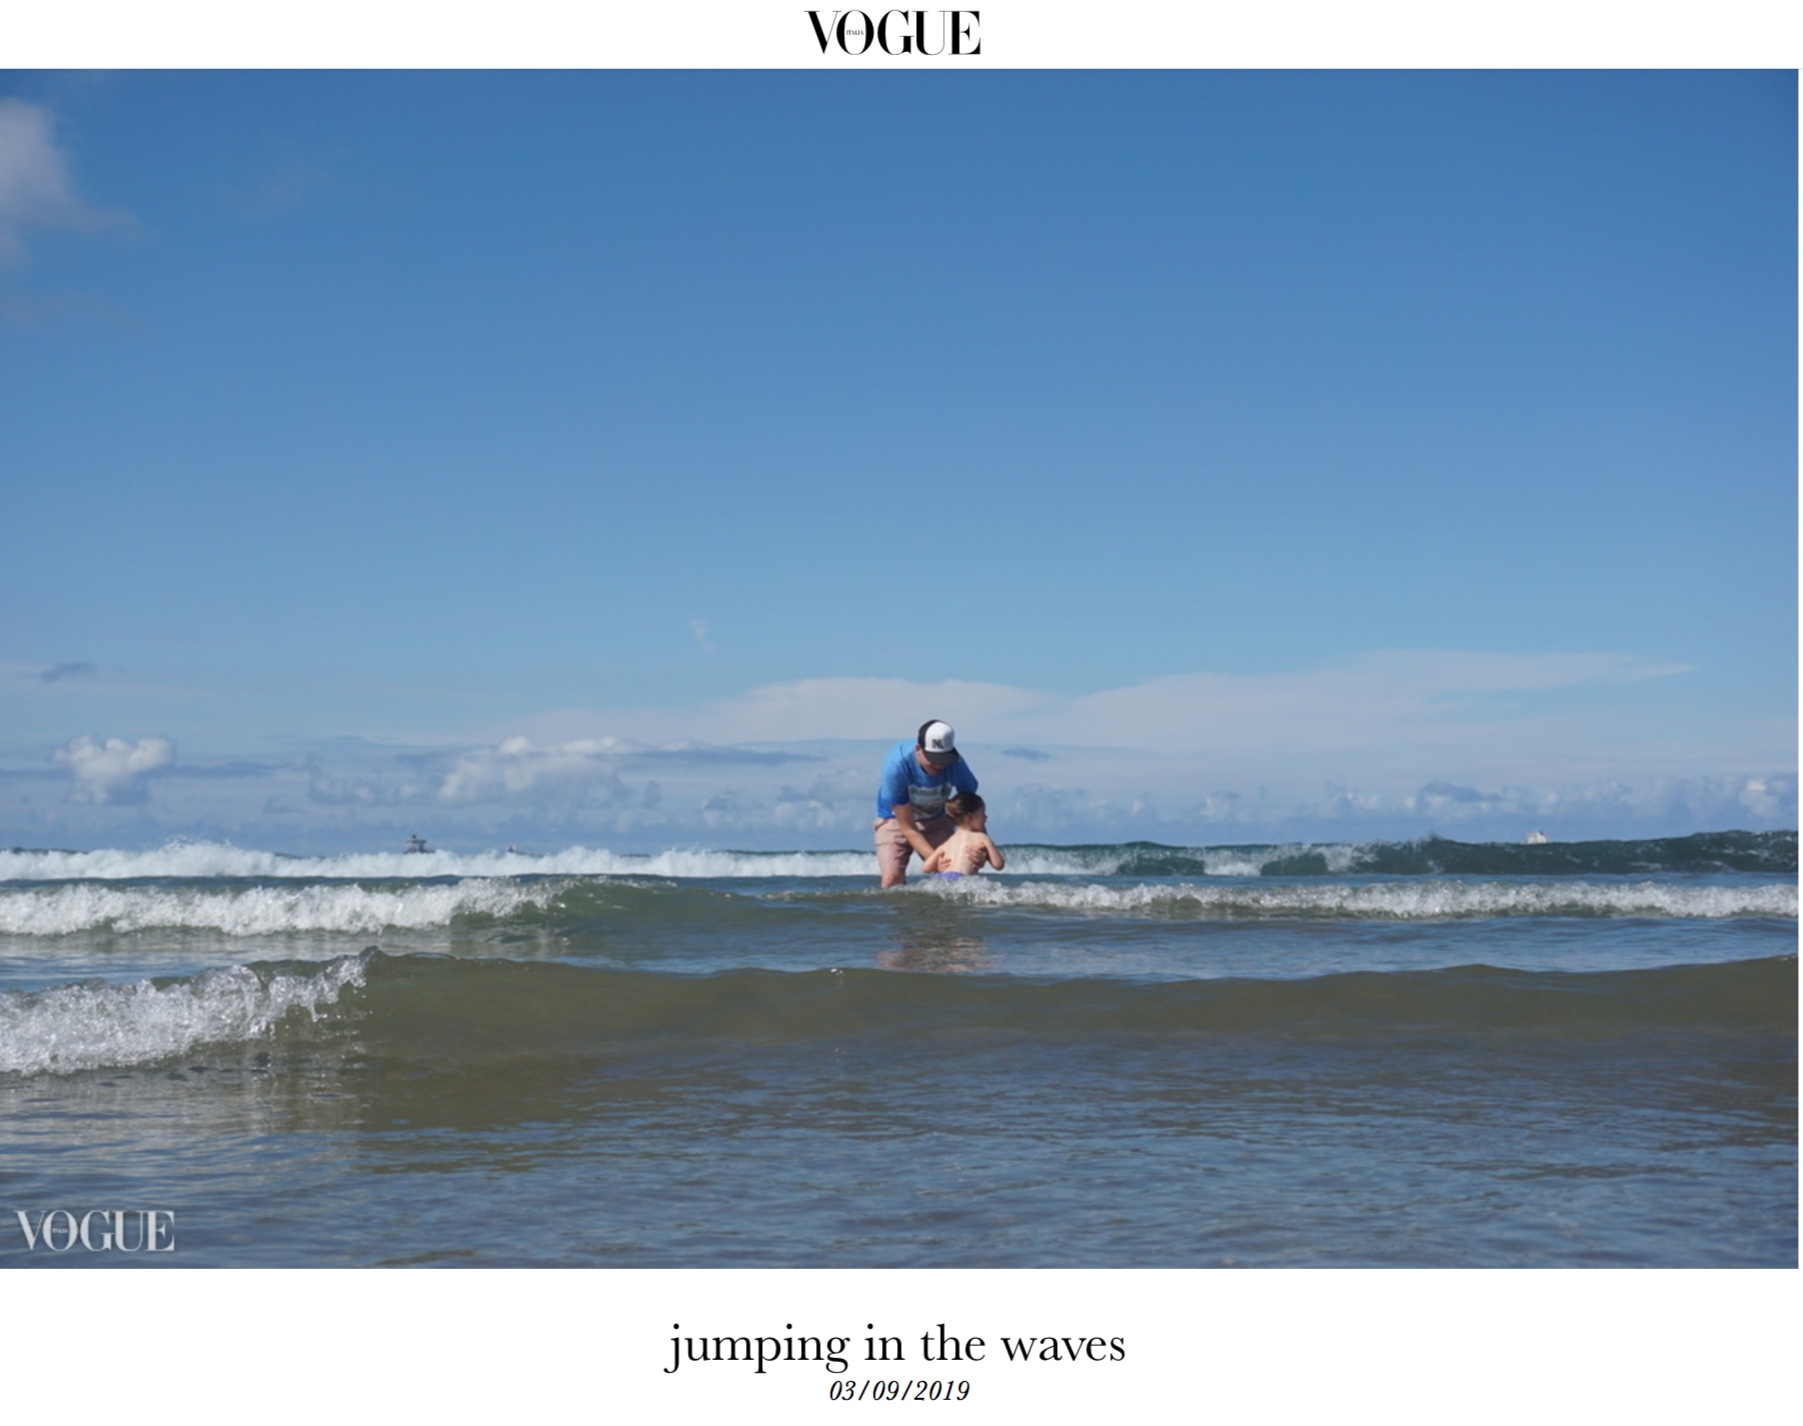 vogue jumping in the waves.jpg